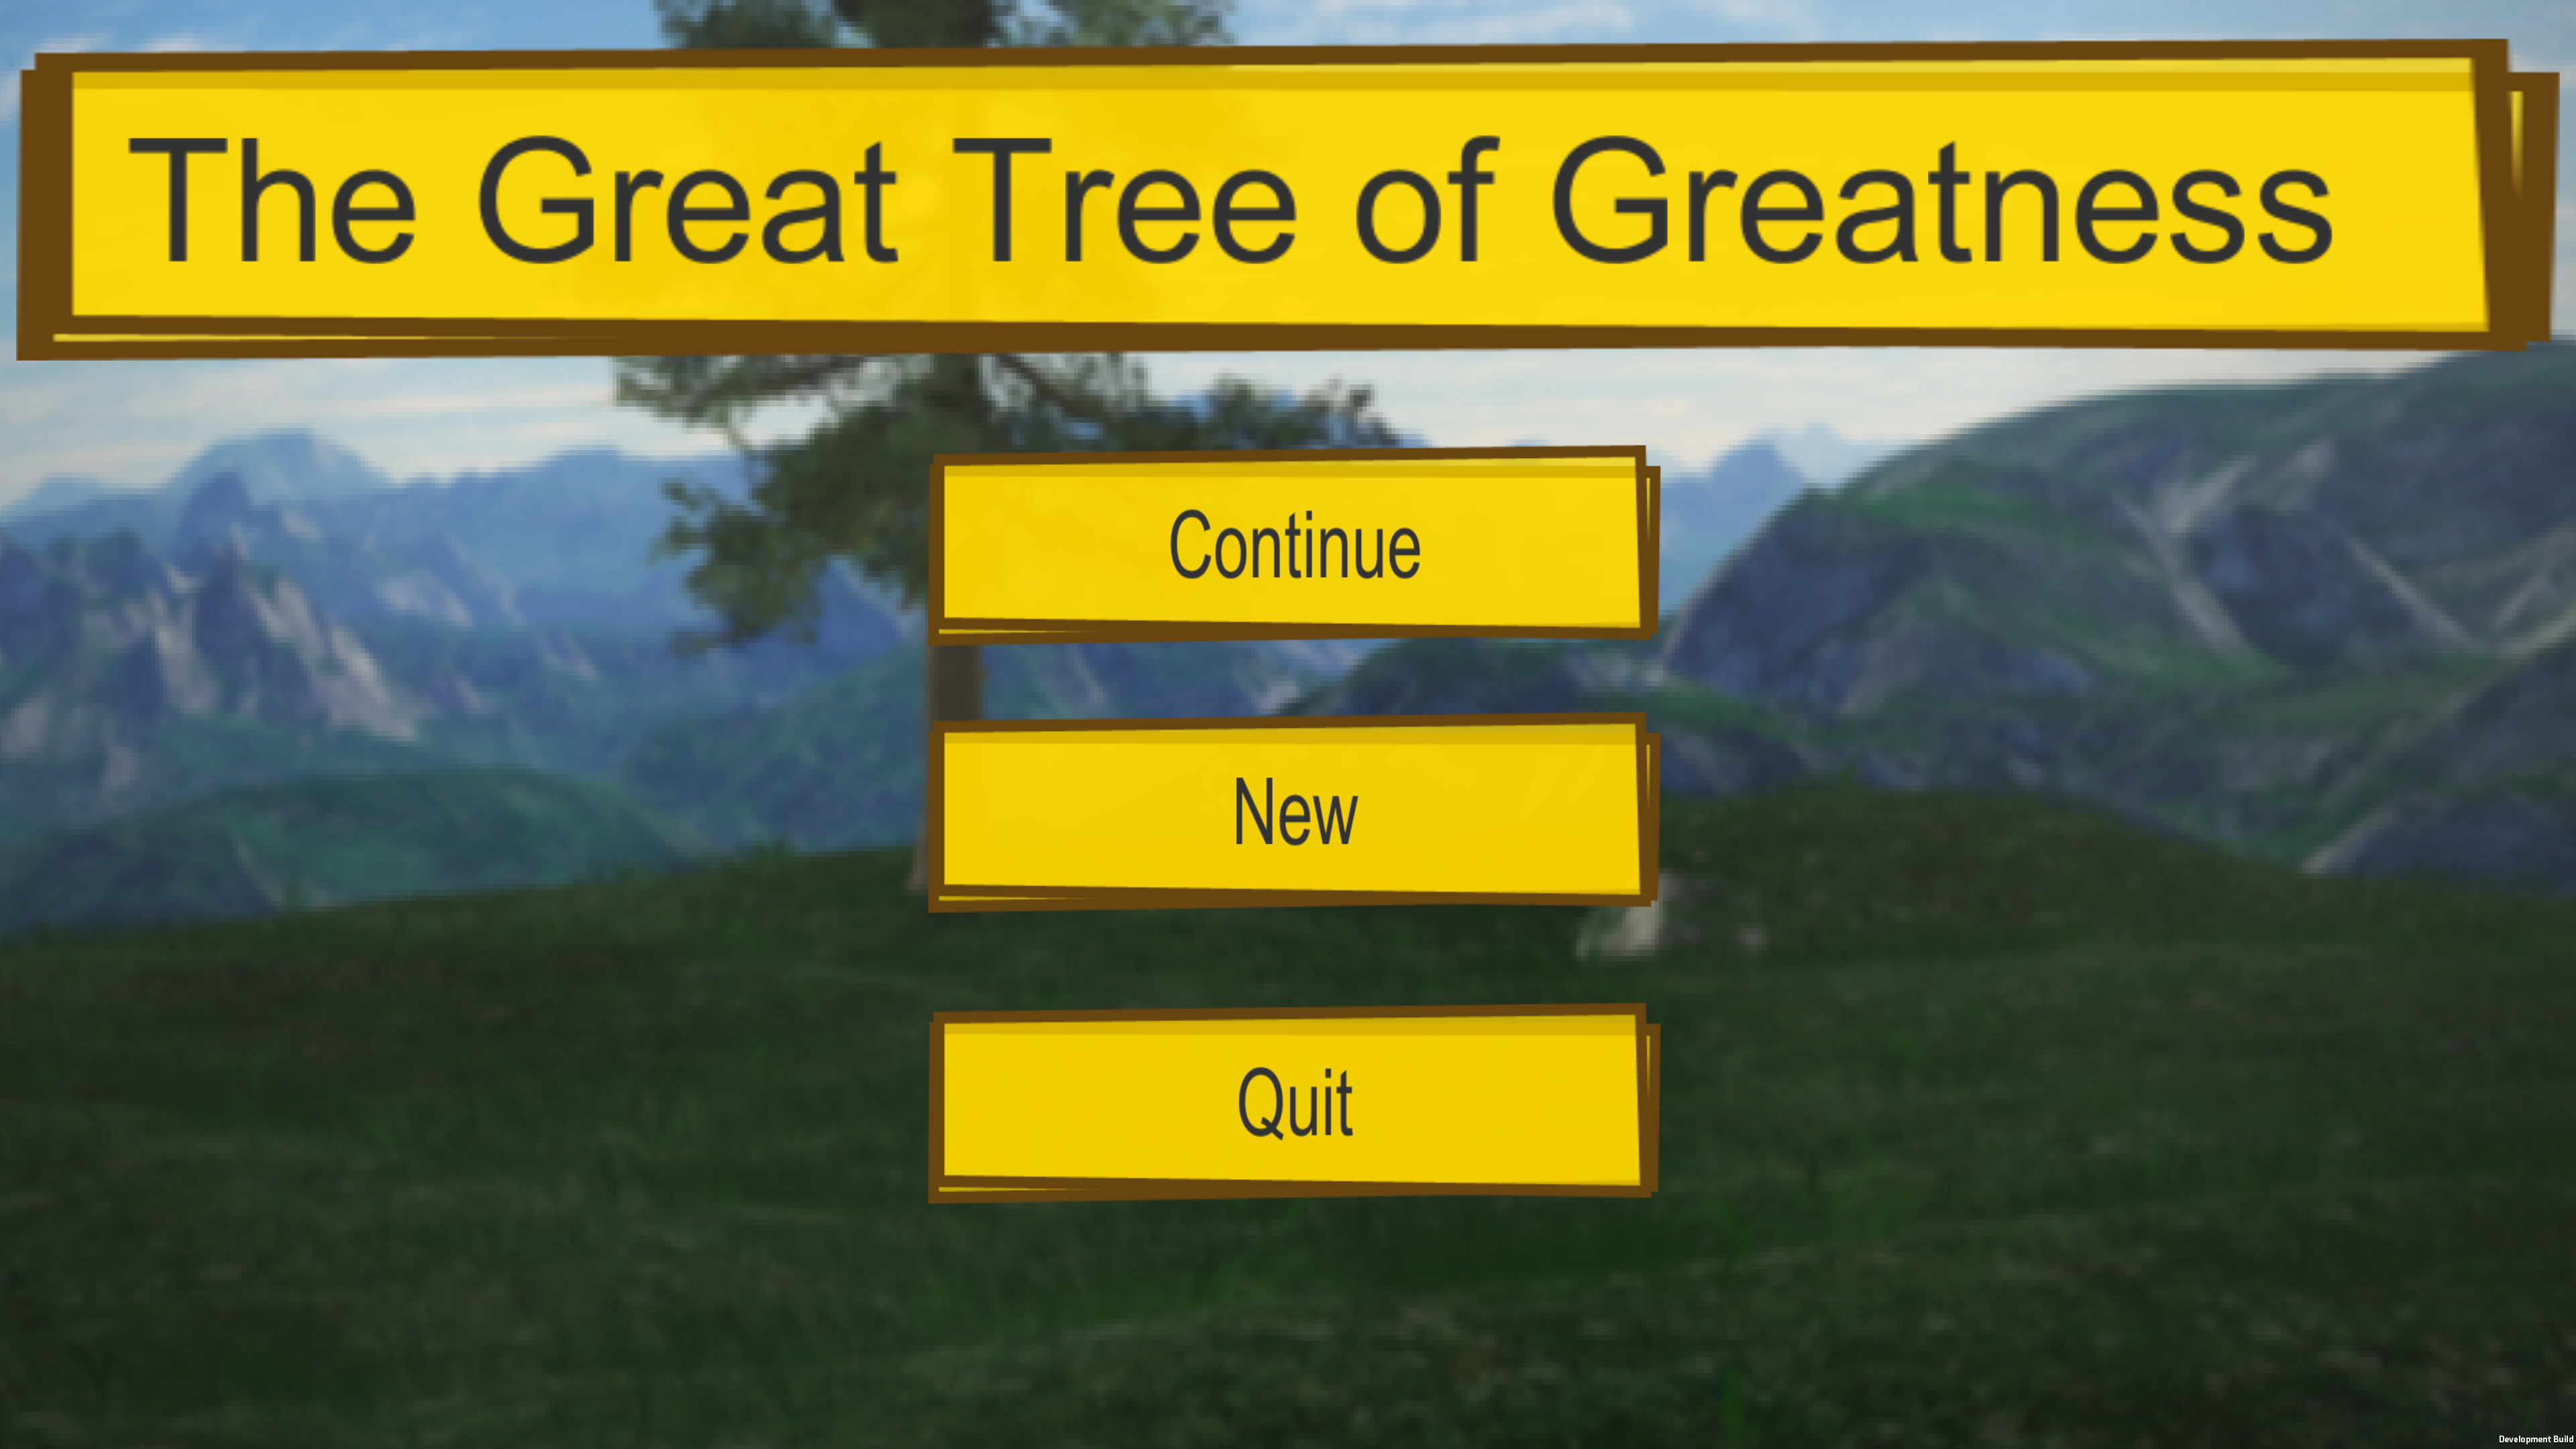 The Great Tree of Greatness